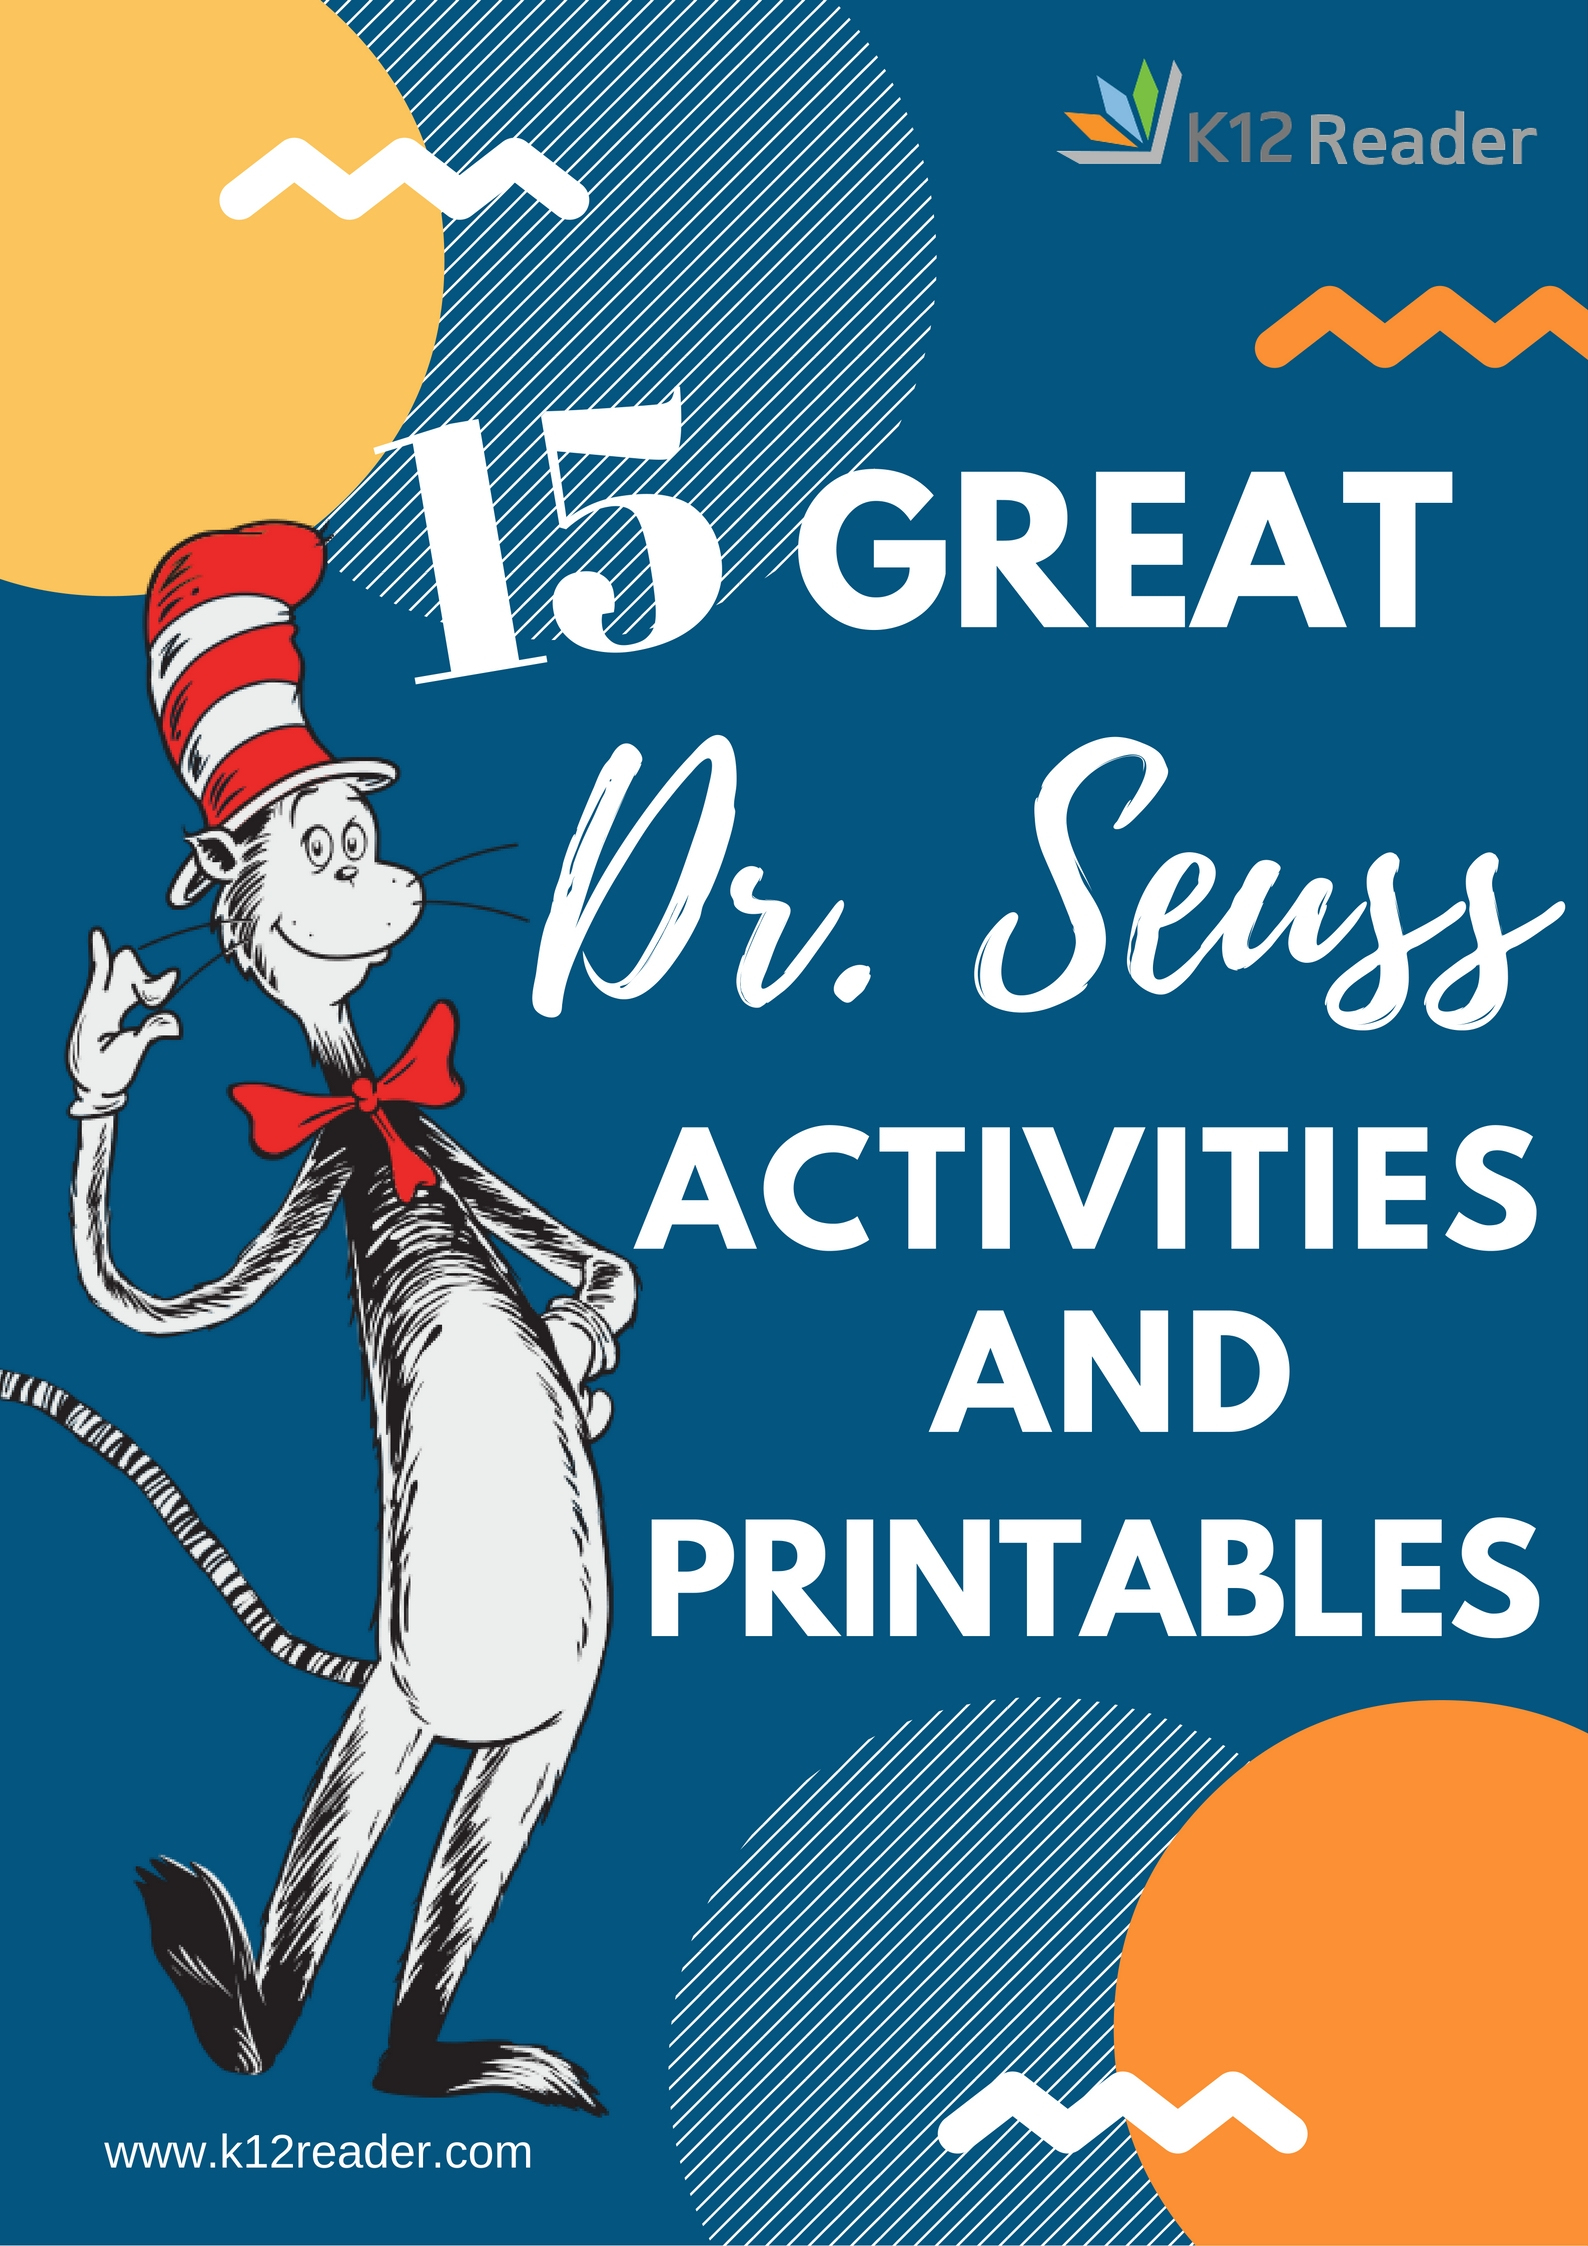 15 Great Dr. Seuss Printables And Activities For Your Classroom - Free Printable Dr Seuss Math Worksheets